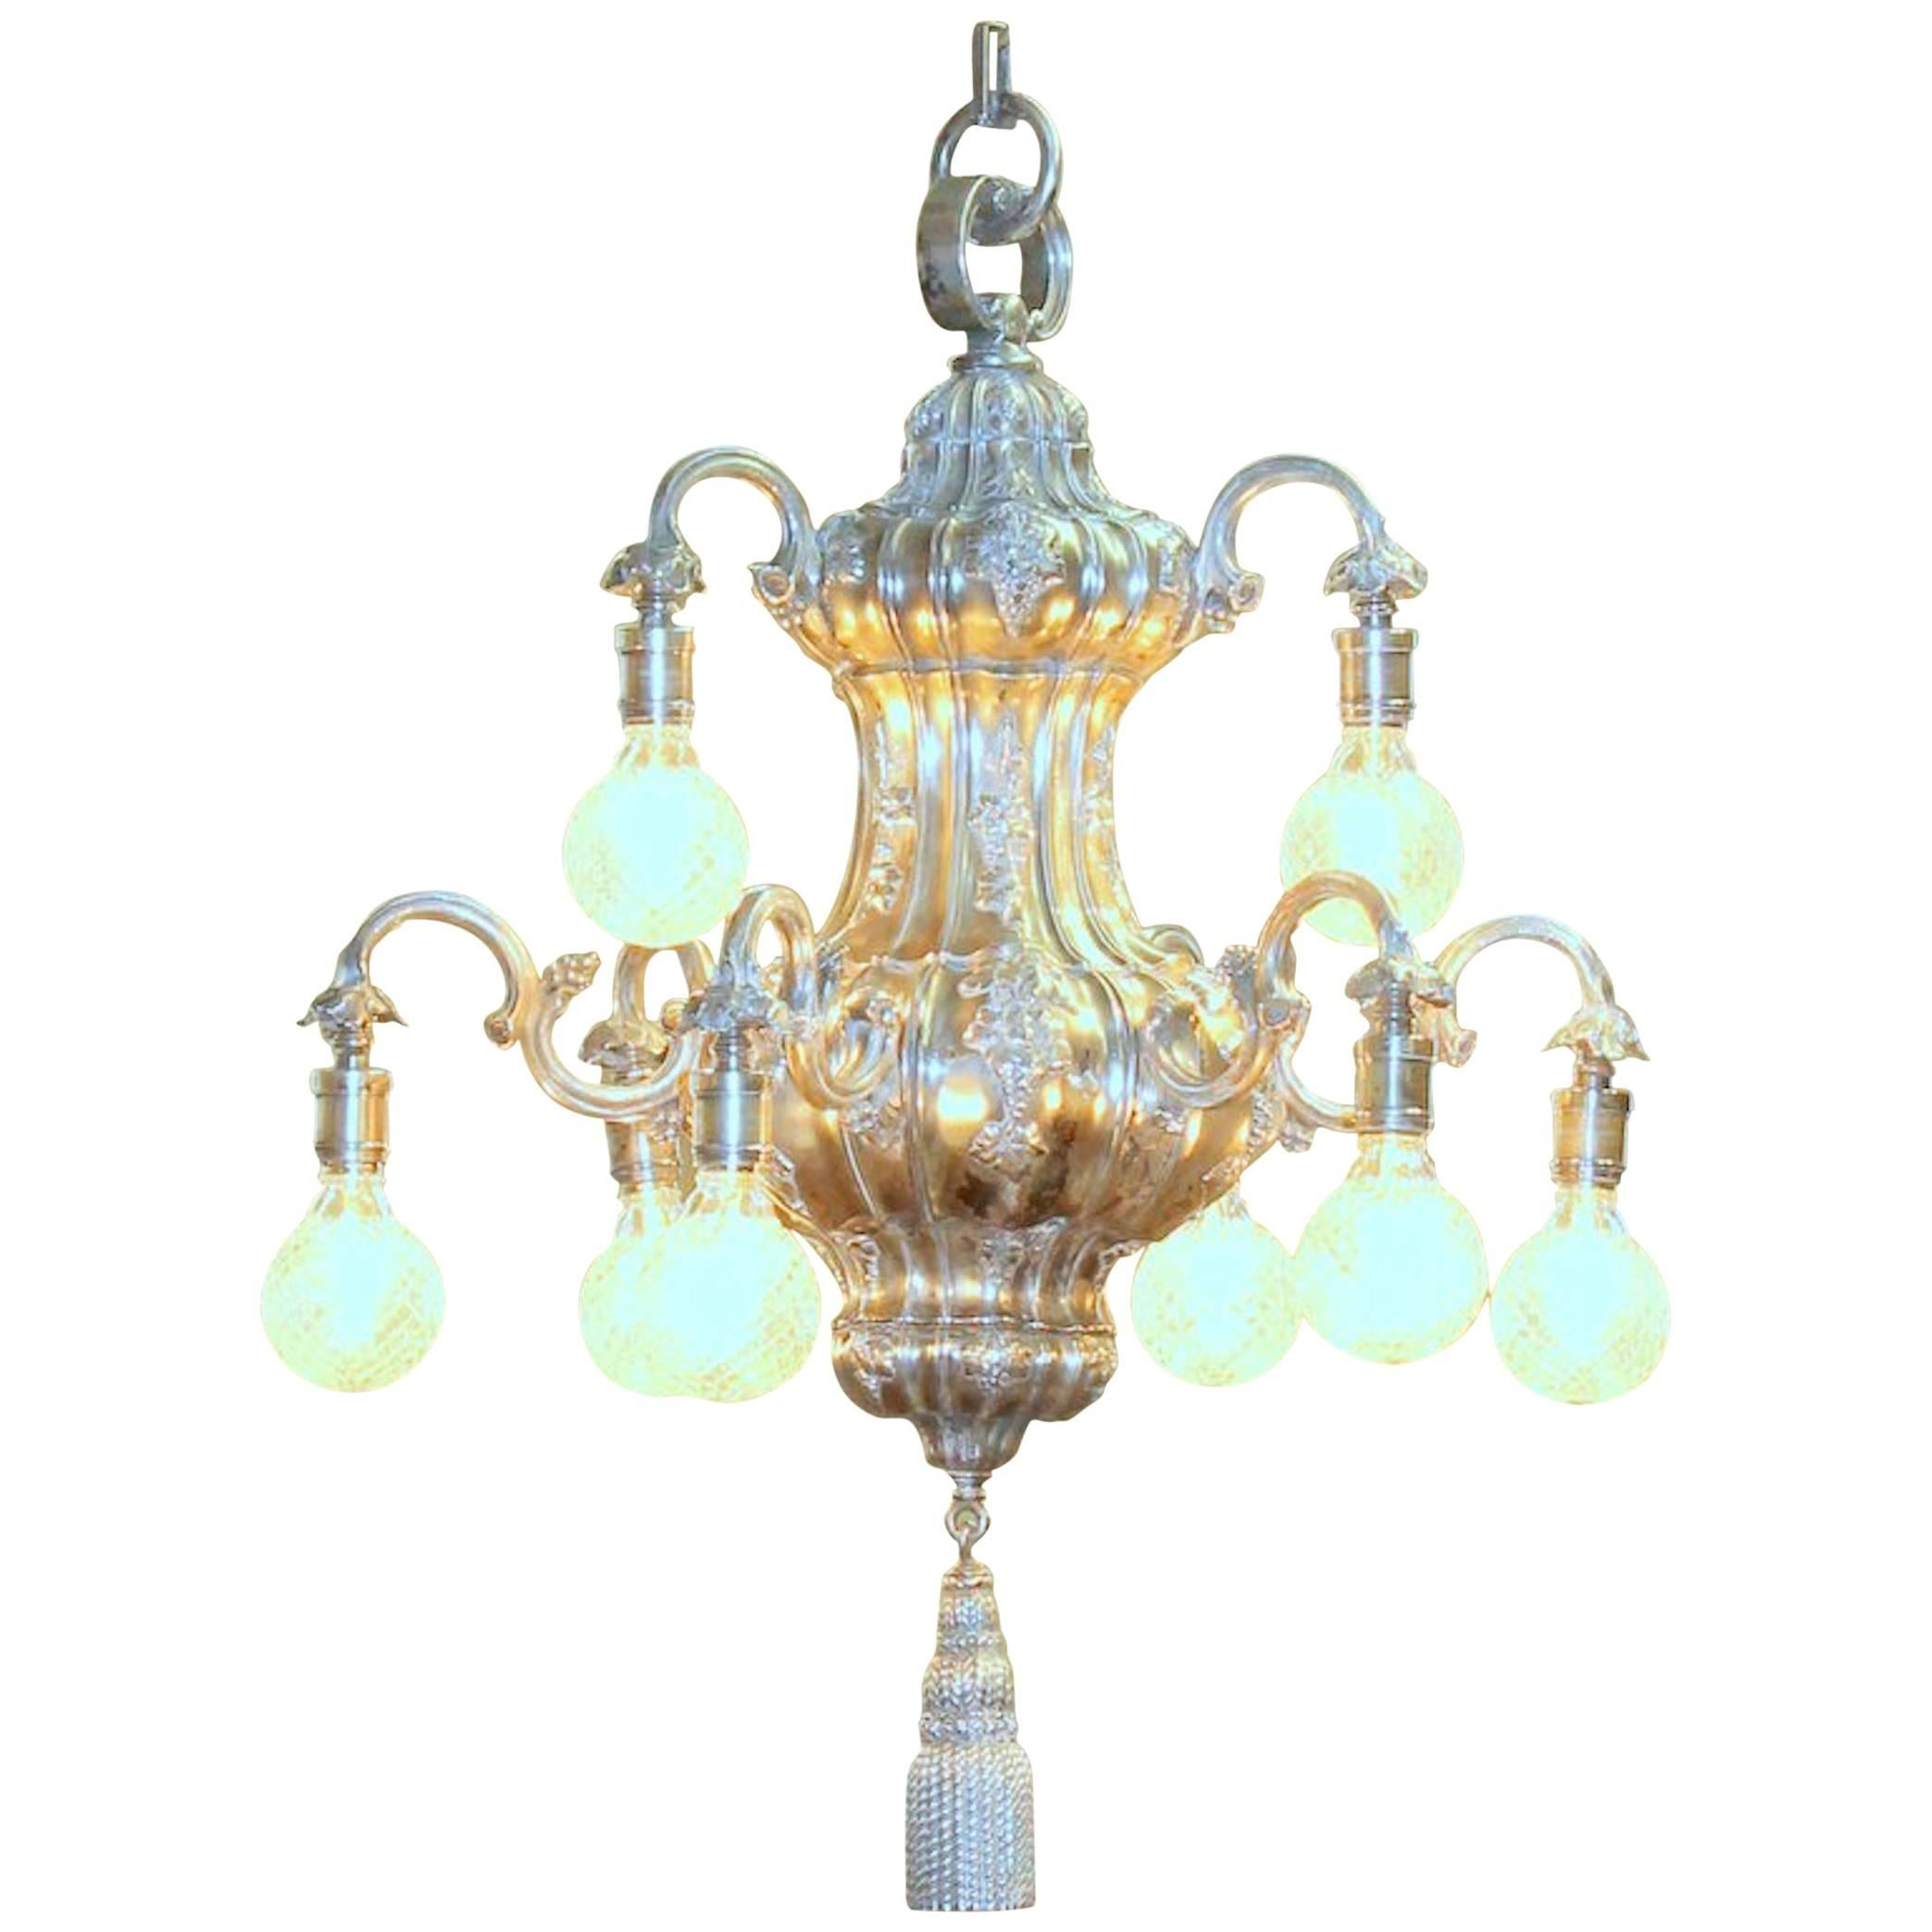 Antique American Silver Plated Bronze E.F. Caldwell Nine-Light Chandelier